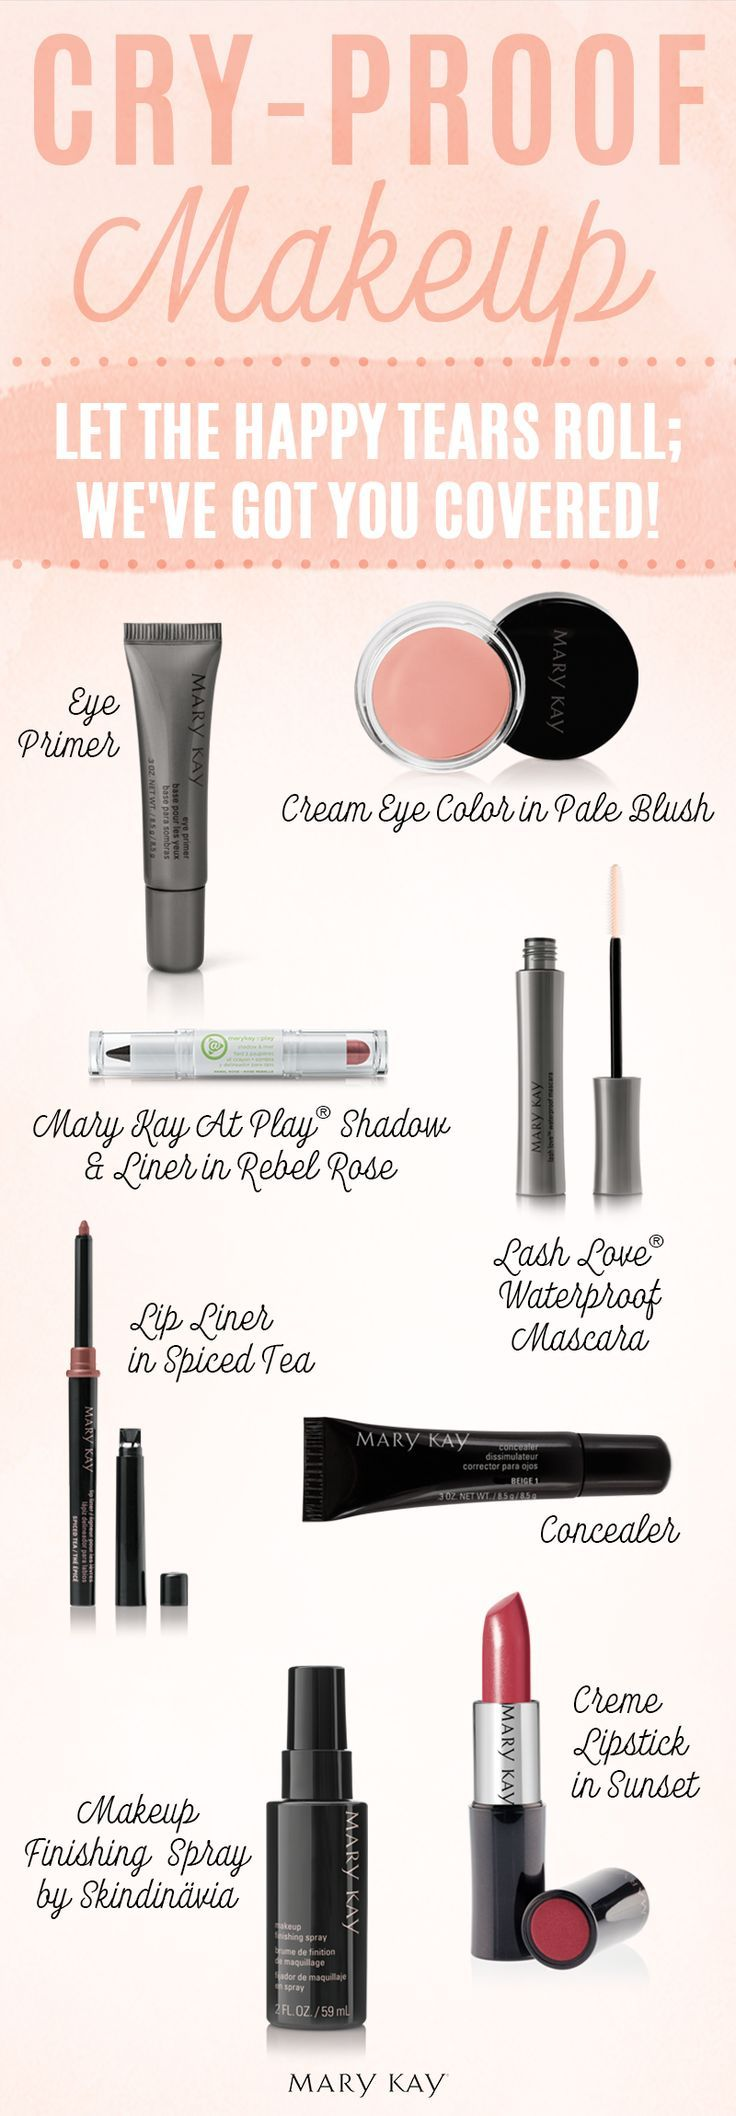 This wedding season, feel free to let the happy tears roll. We've got you covered with cry-proof makeup that will keep you looking picture-perfect all night long, no matter how touching the vows are. | Mary Kay